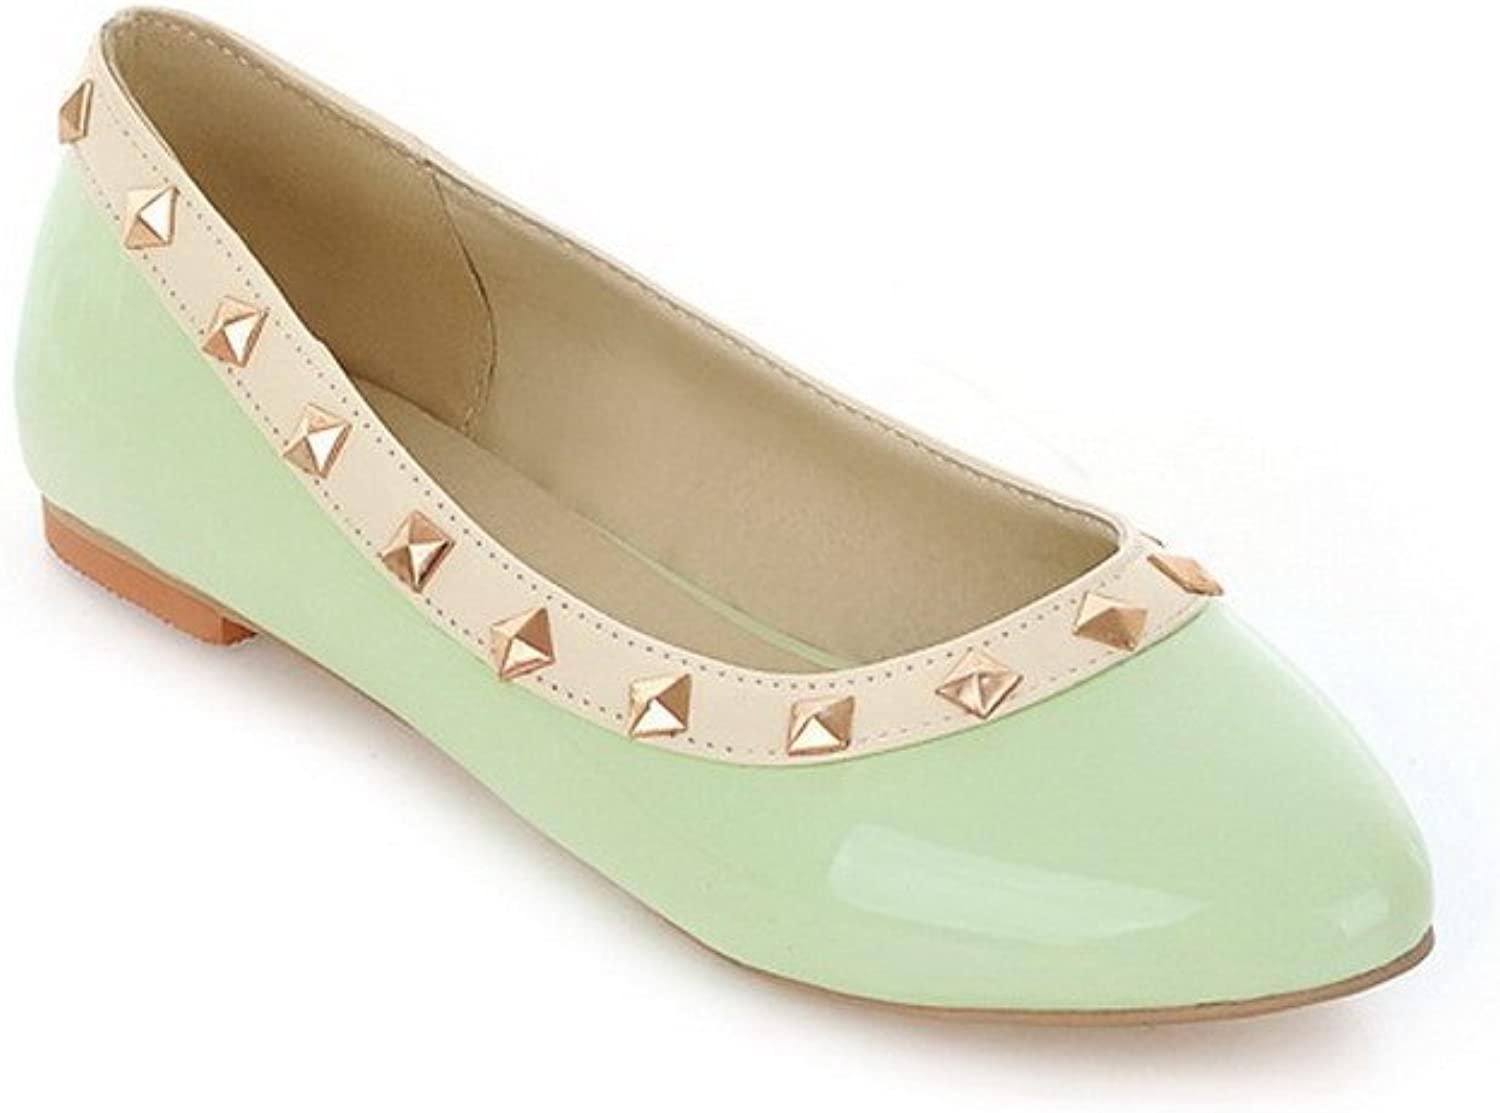 WeenFashion Women's Closed Round Toe Patent Leather PU Solid Flats whith Rivet, Green, 10 B(M) US